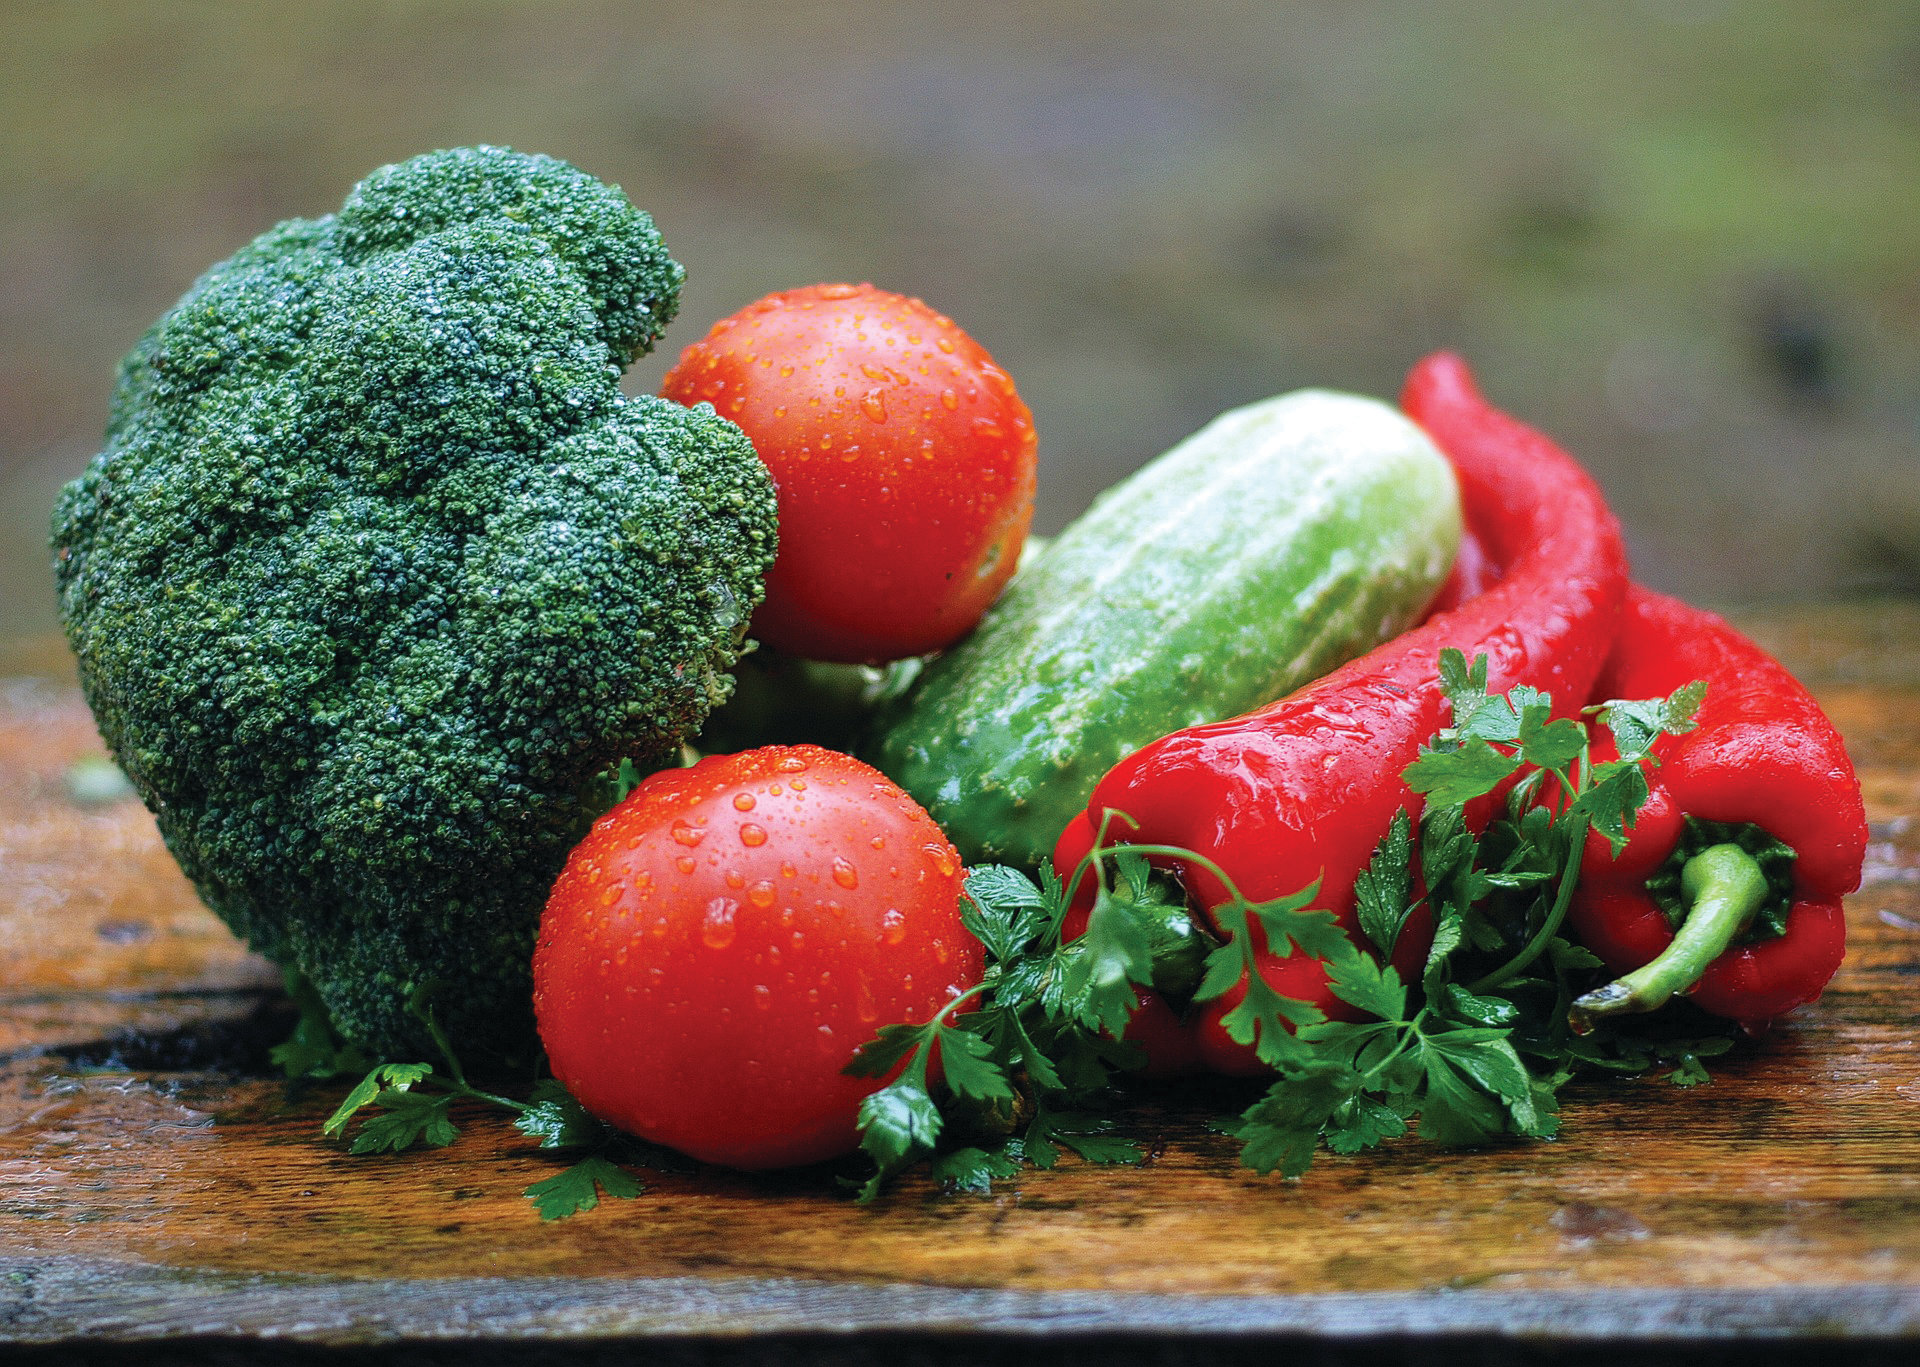 Sumter farm receives grant to improve access to healthy food